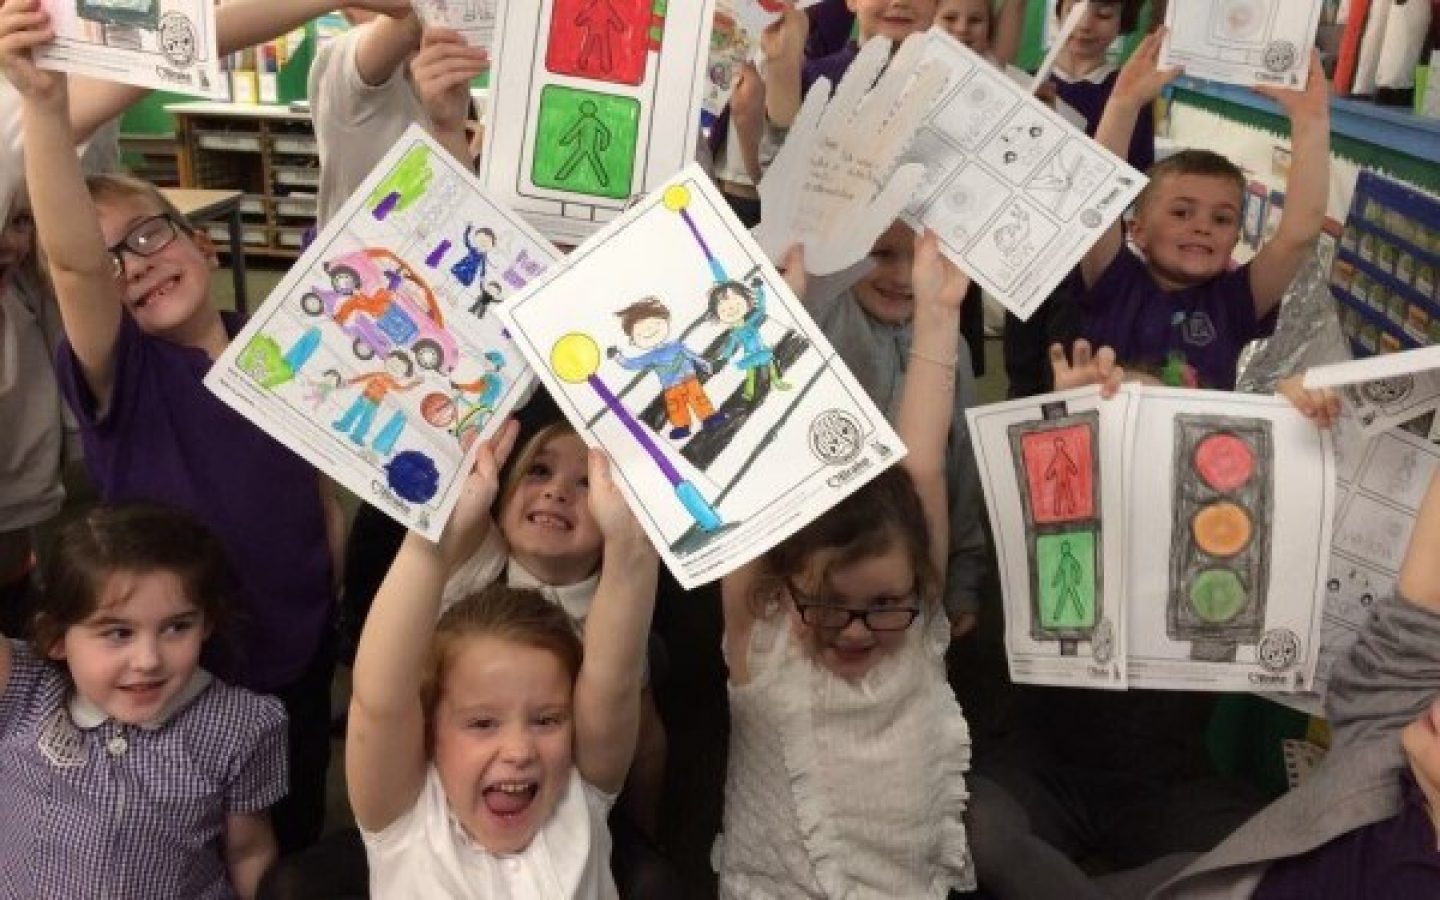 Children holding colouring sheets